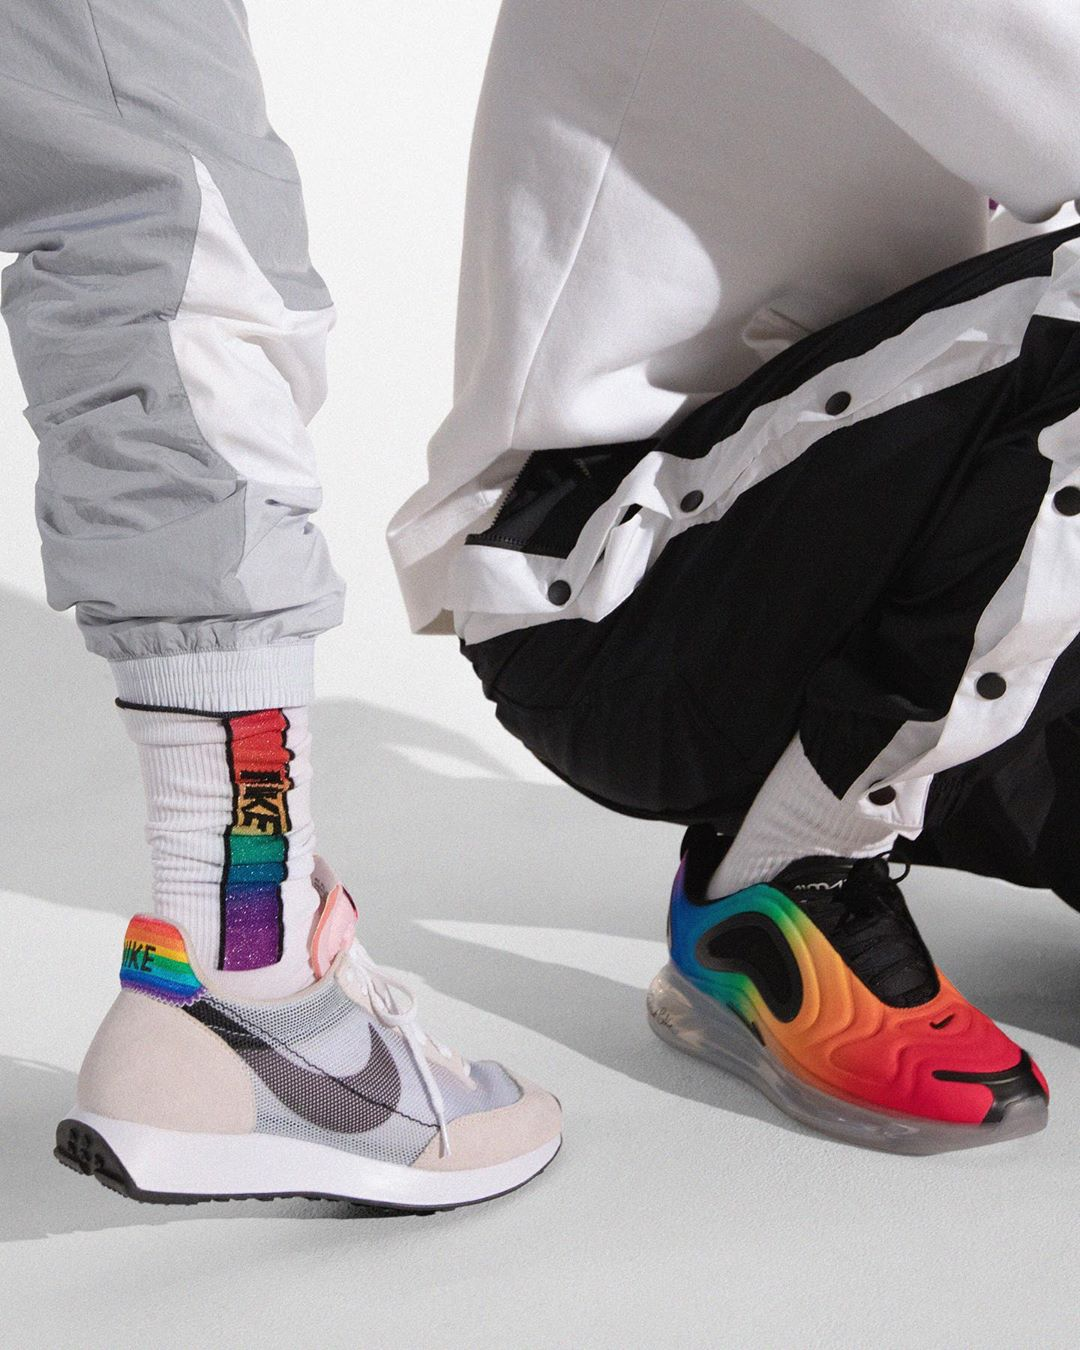 nike-betrue-2019-collection-release-20190601